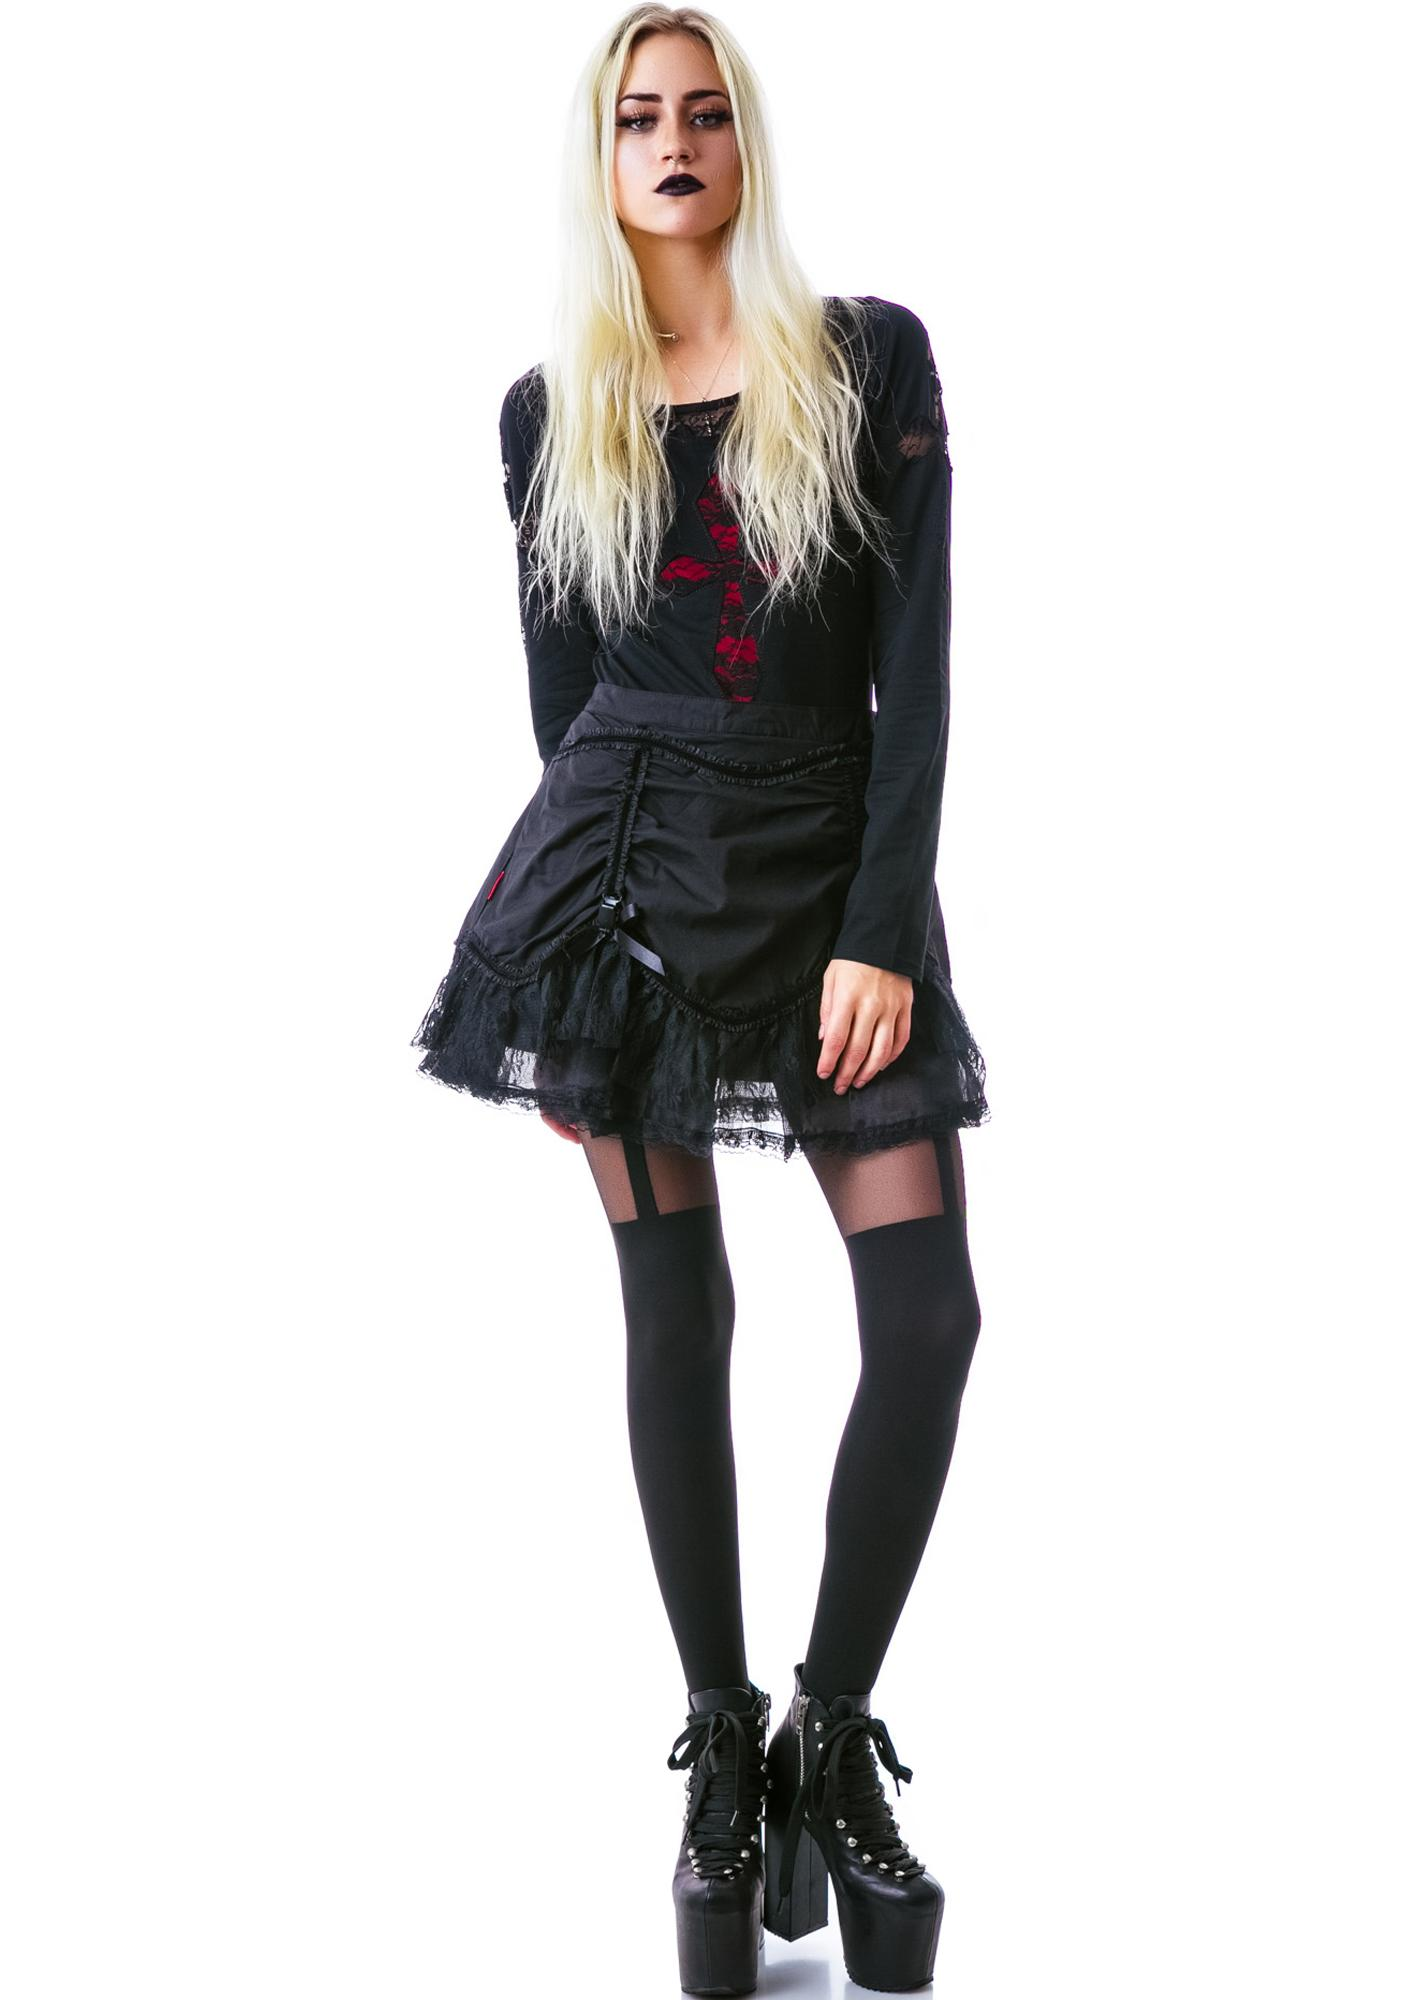 All Hallows Eve Lace Miniskirt